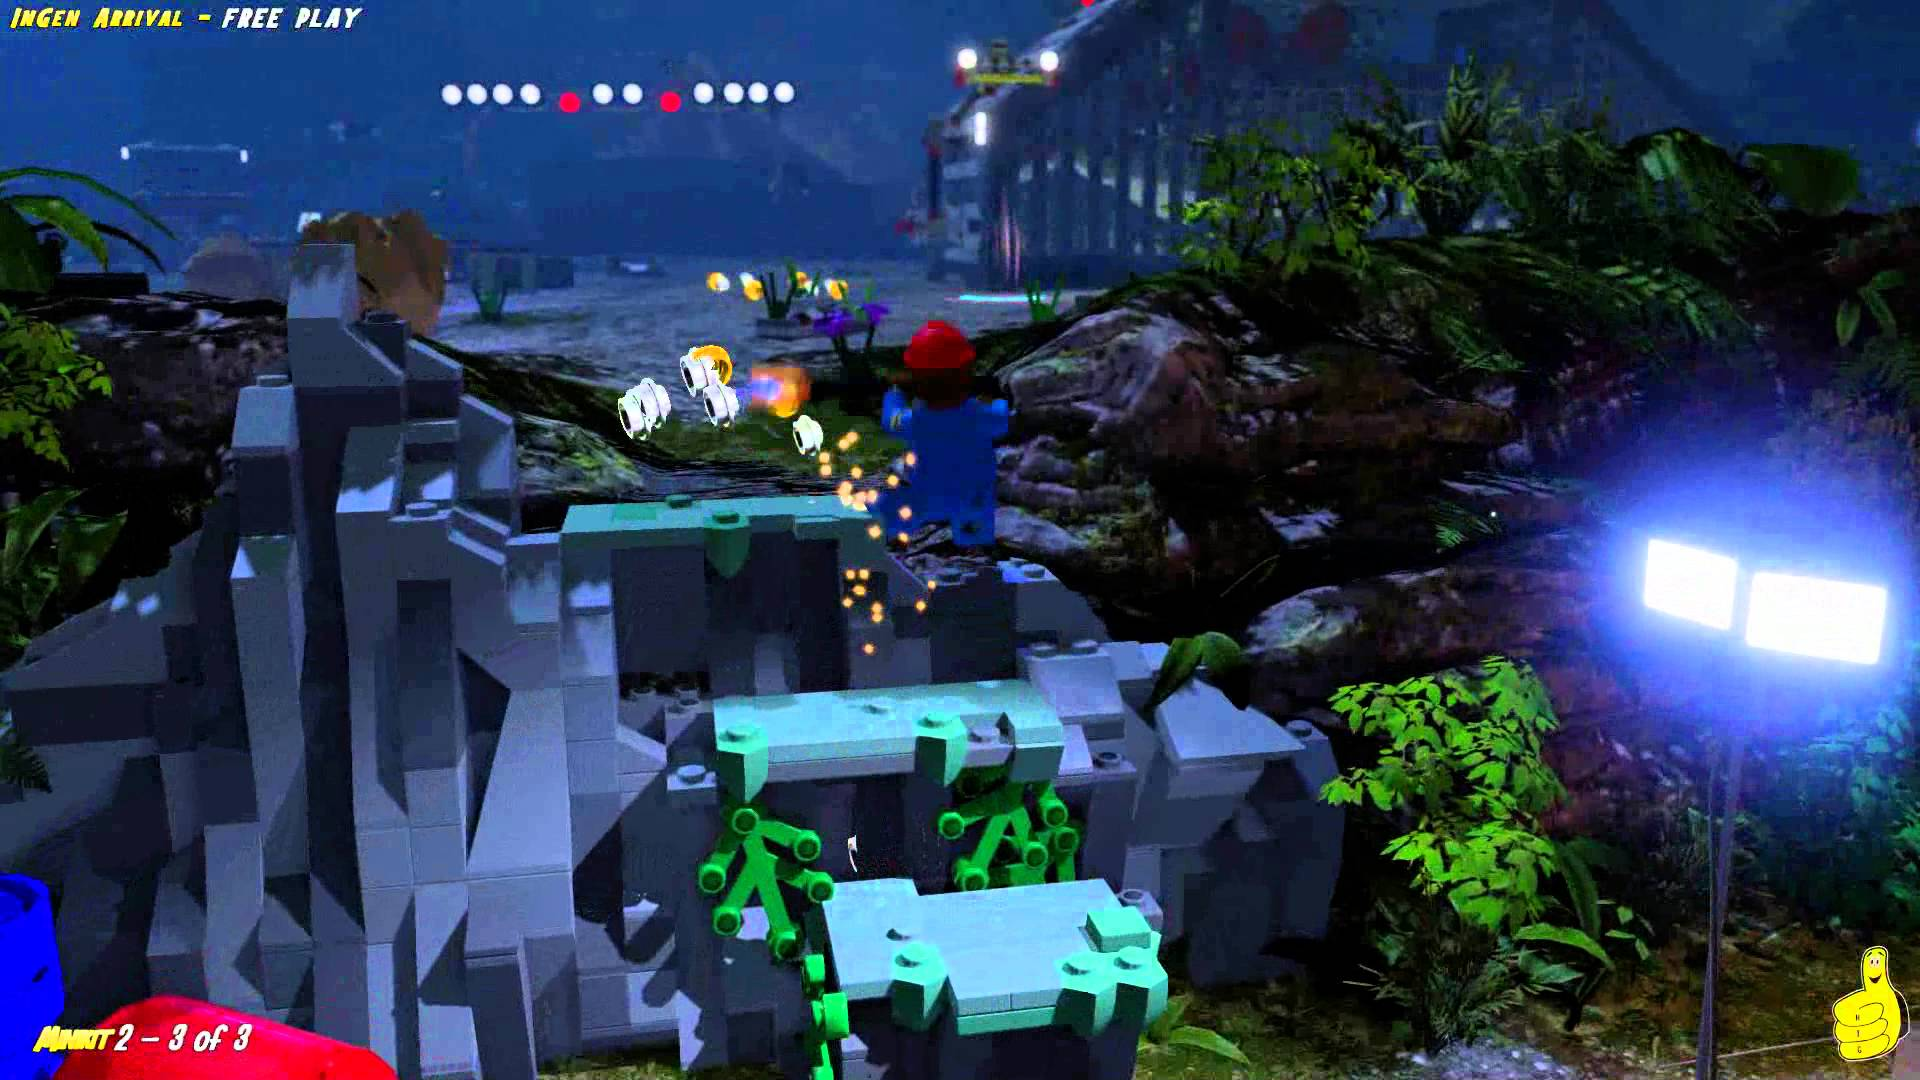 Lego Jurassic World: Level 7 InGen Arrival FREE PLAY (All Collectibles) – HTG